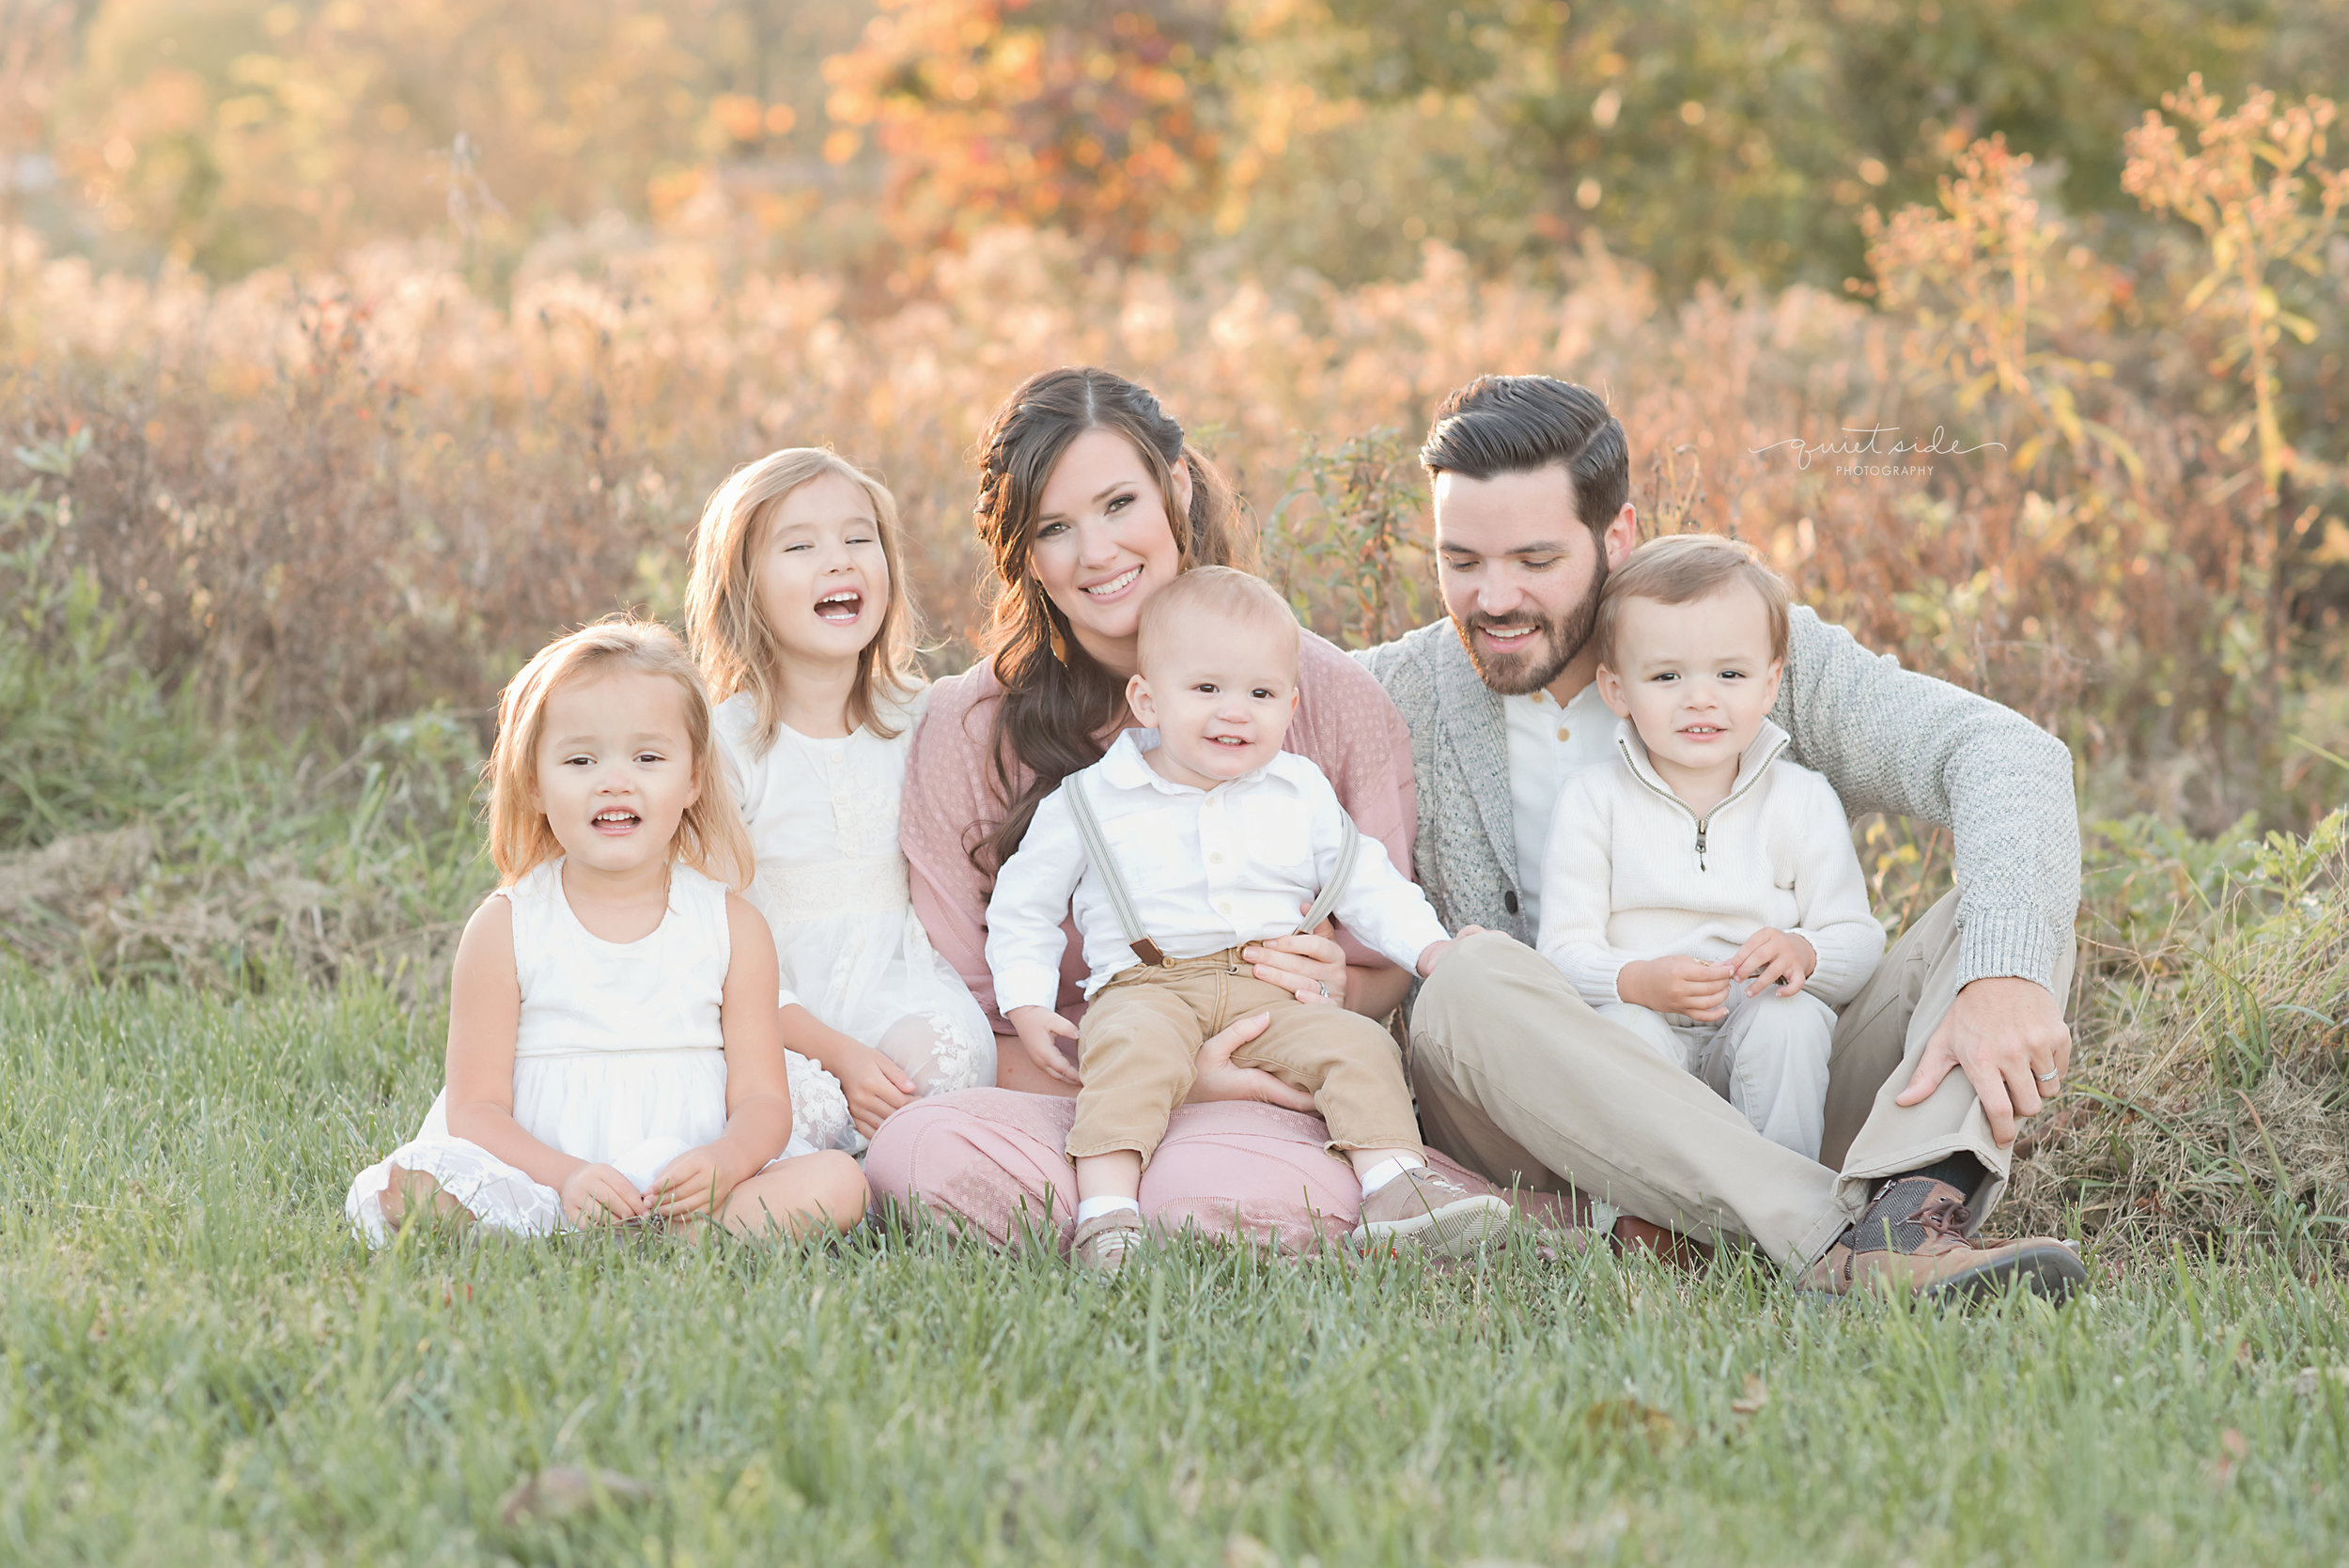 Loudoun-County-Family-Photographer-Purcellville-Ashburn-Leesburg-NorthernVA-Photographer-Family-Motherhood-Newborn-Maternity-QuietSidePhotography-Adamson-Family.jpg